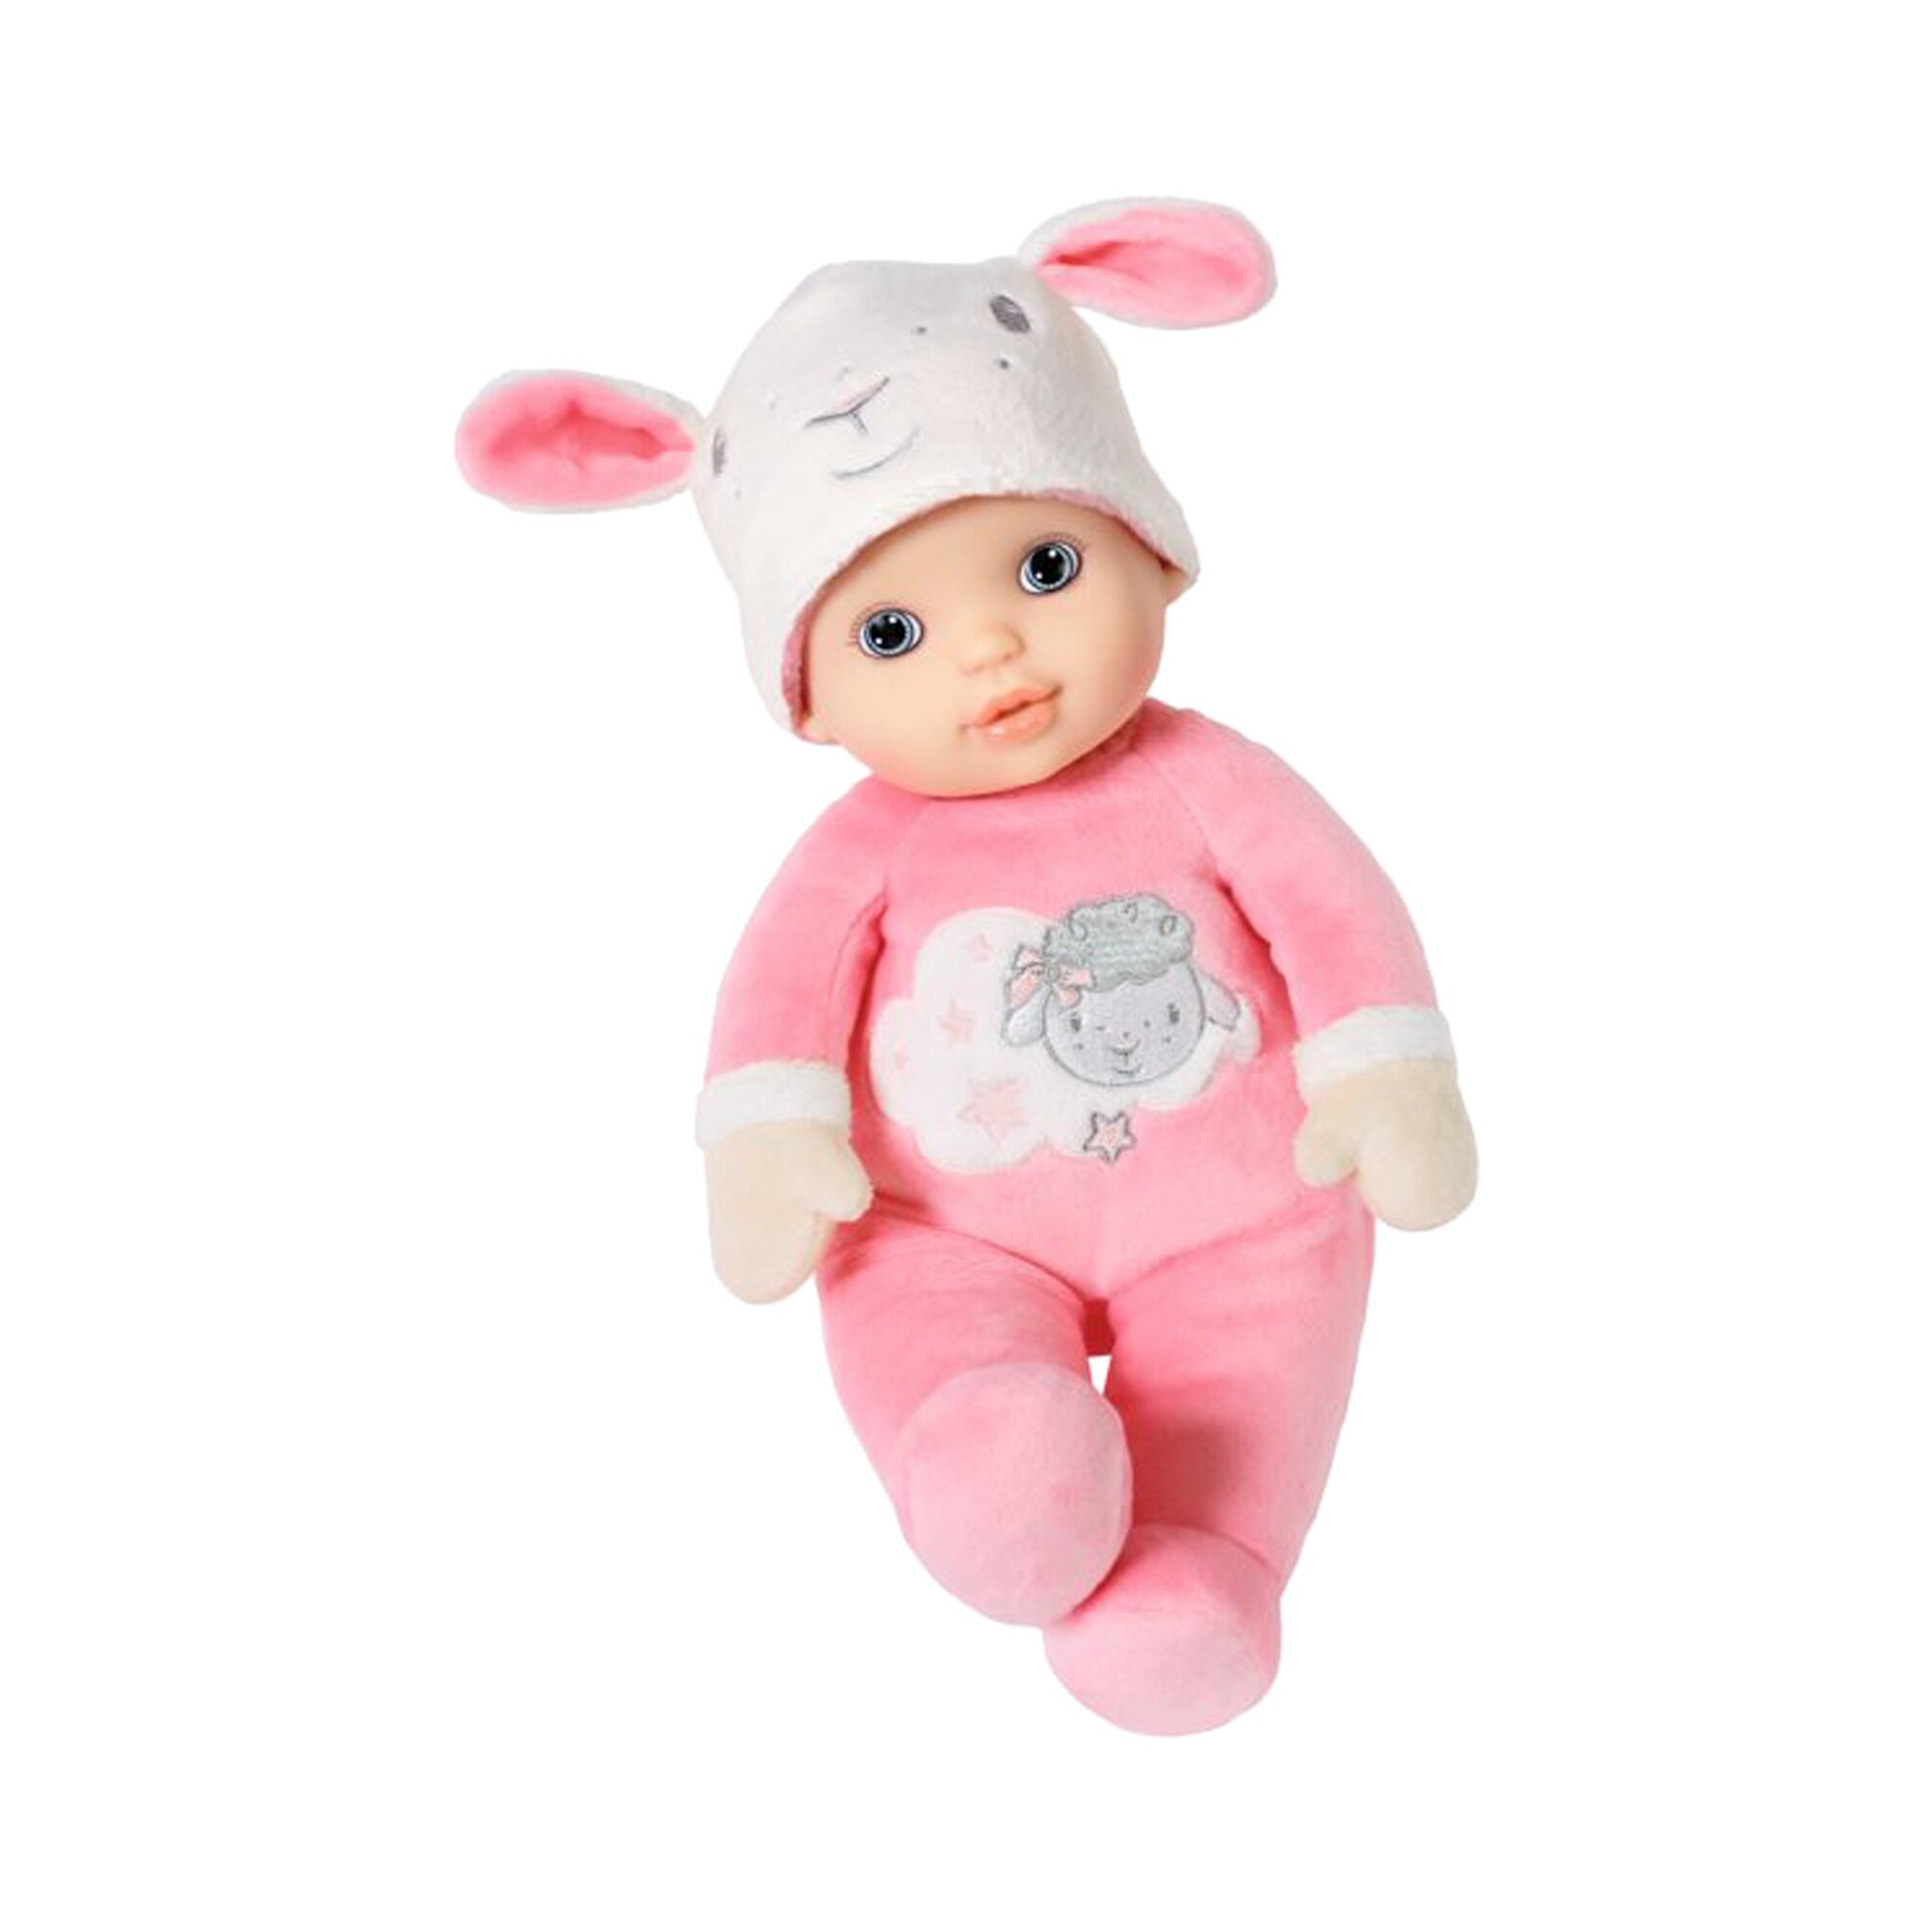 Baby Annabell Puppe Baby Annabell Sweetie for babies 30cm